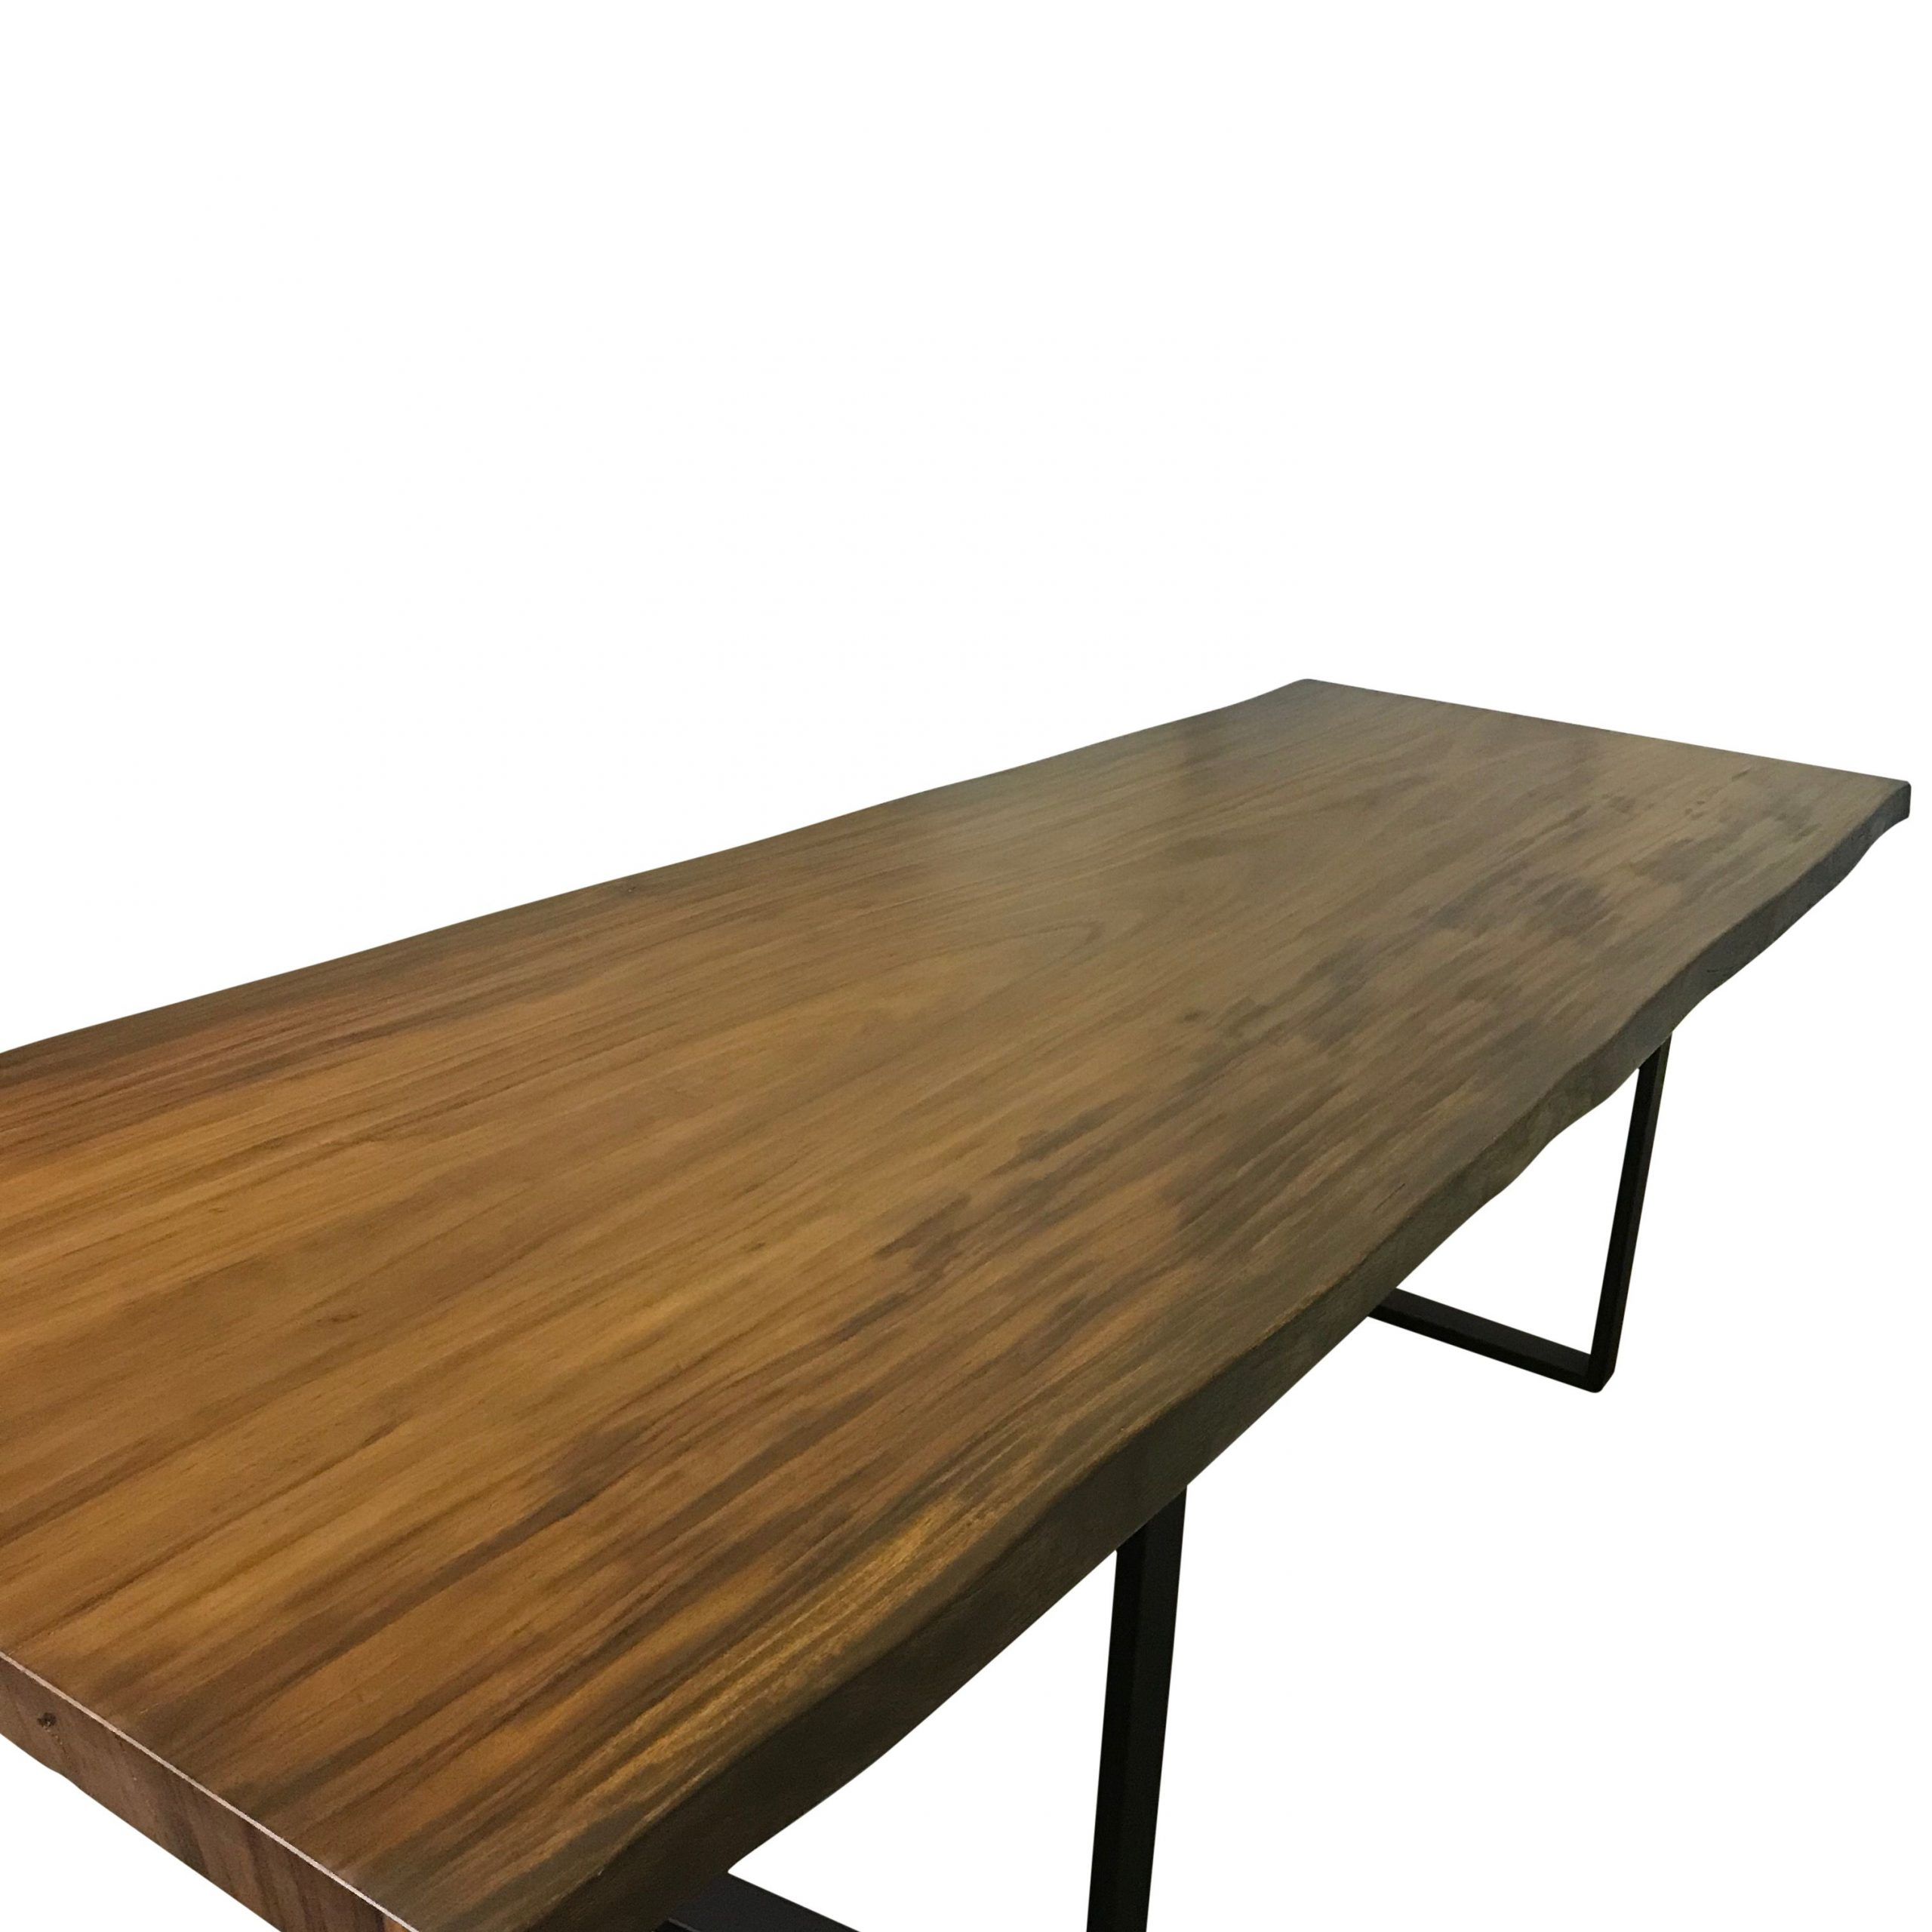 Newest Dining Tables With Black U Legs For Buy Custom 10Ft Live Edge Dining Table Made From Guanacaste (Gallery 25 of 30)